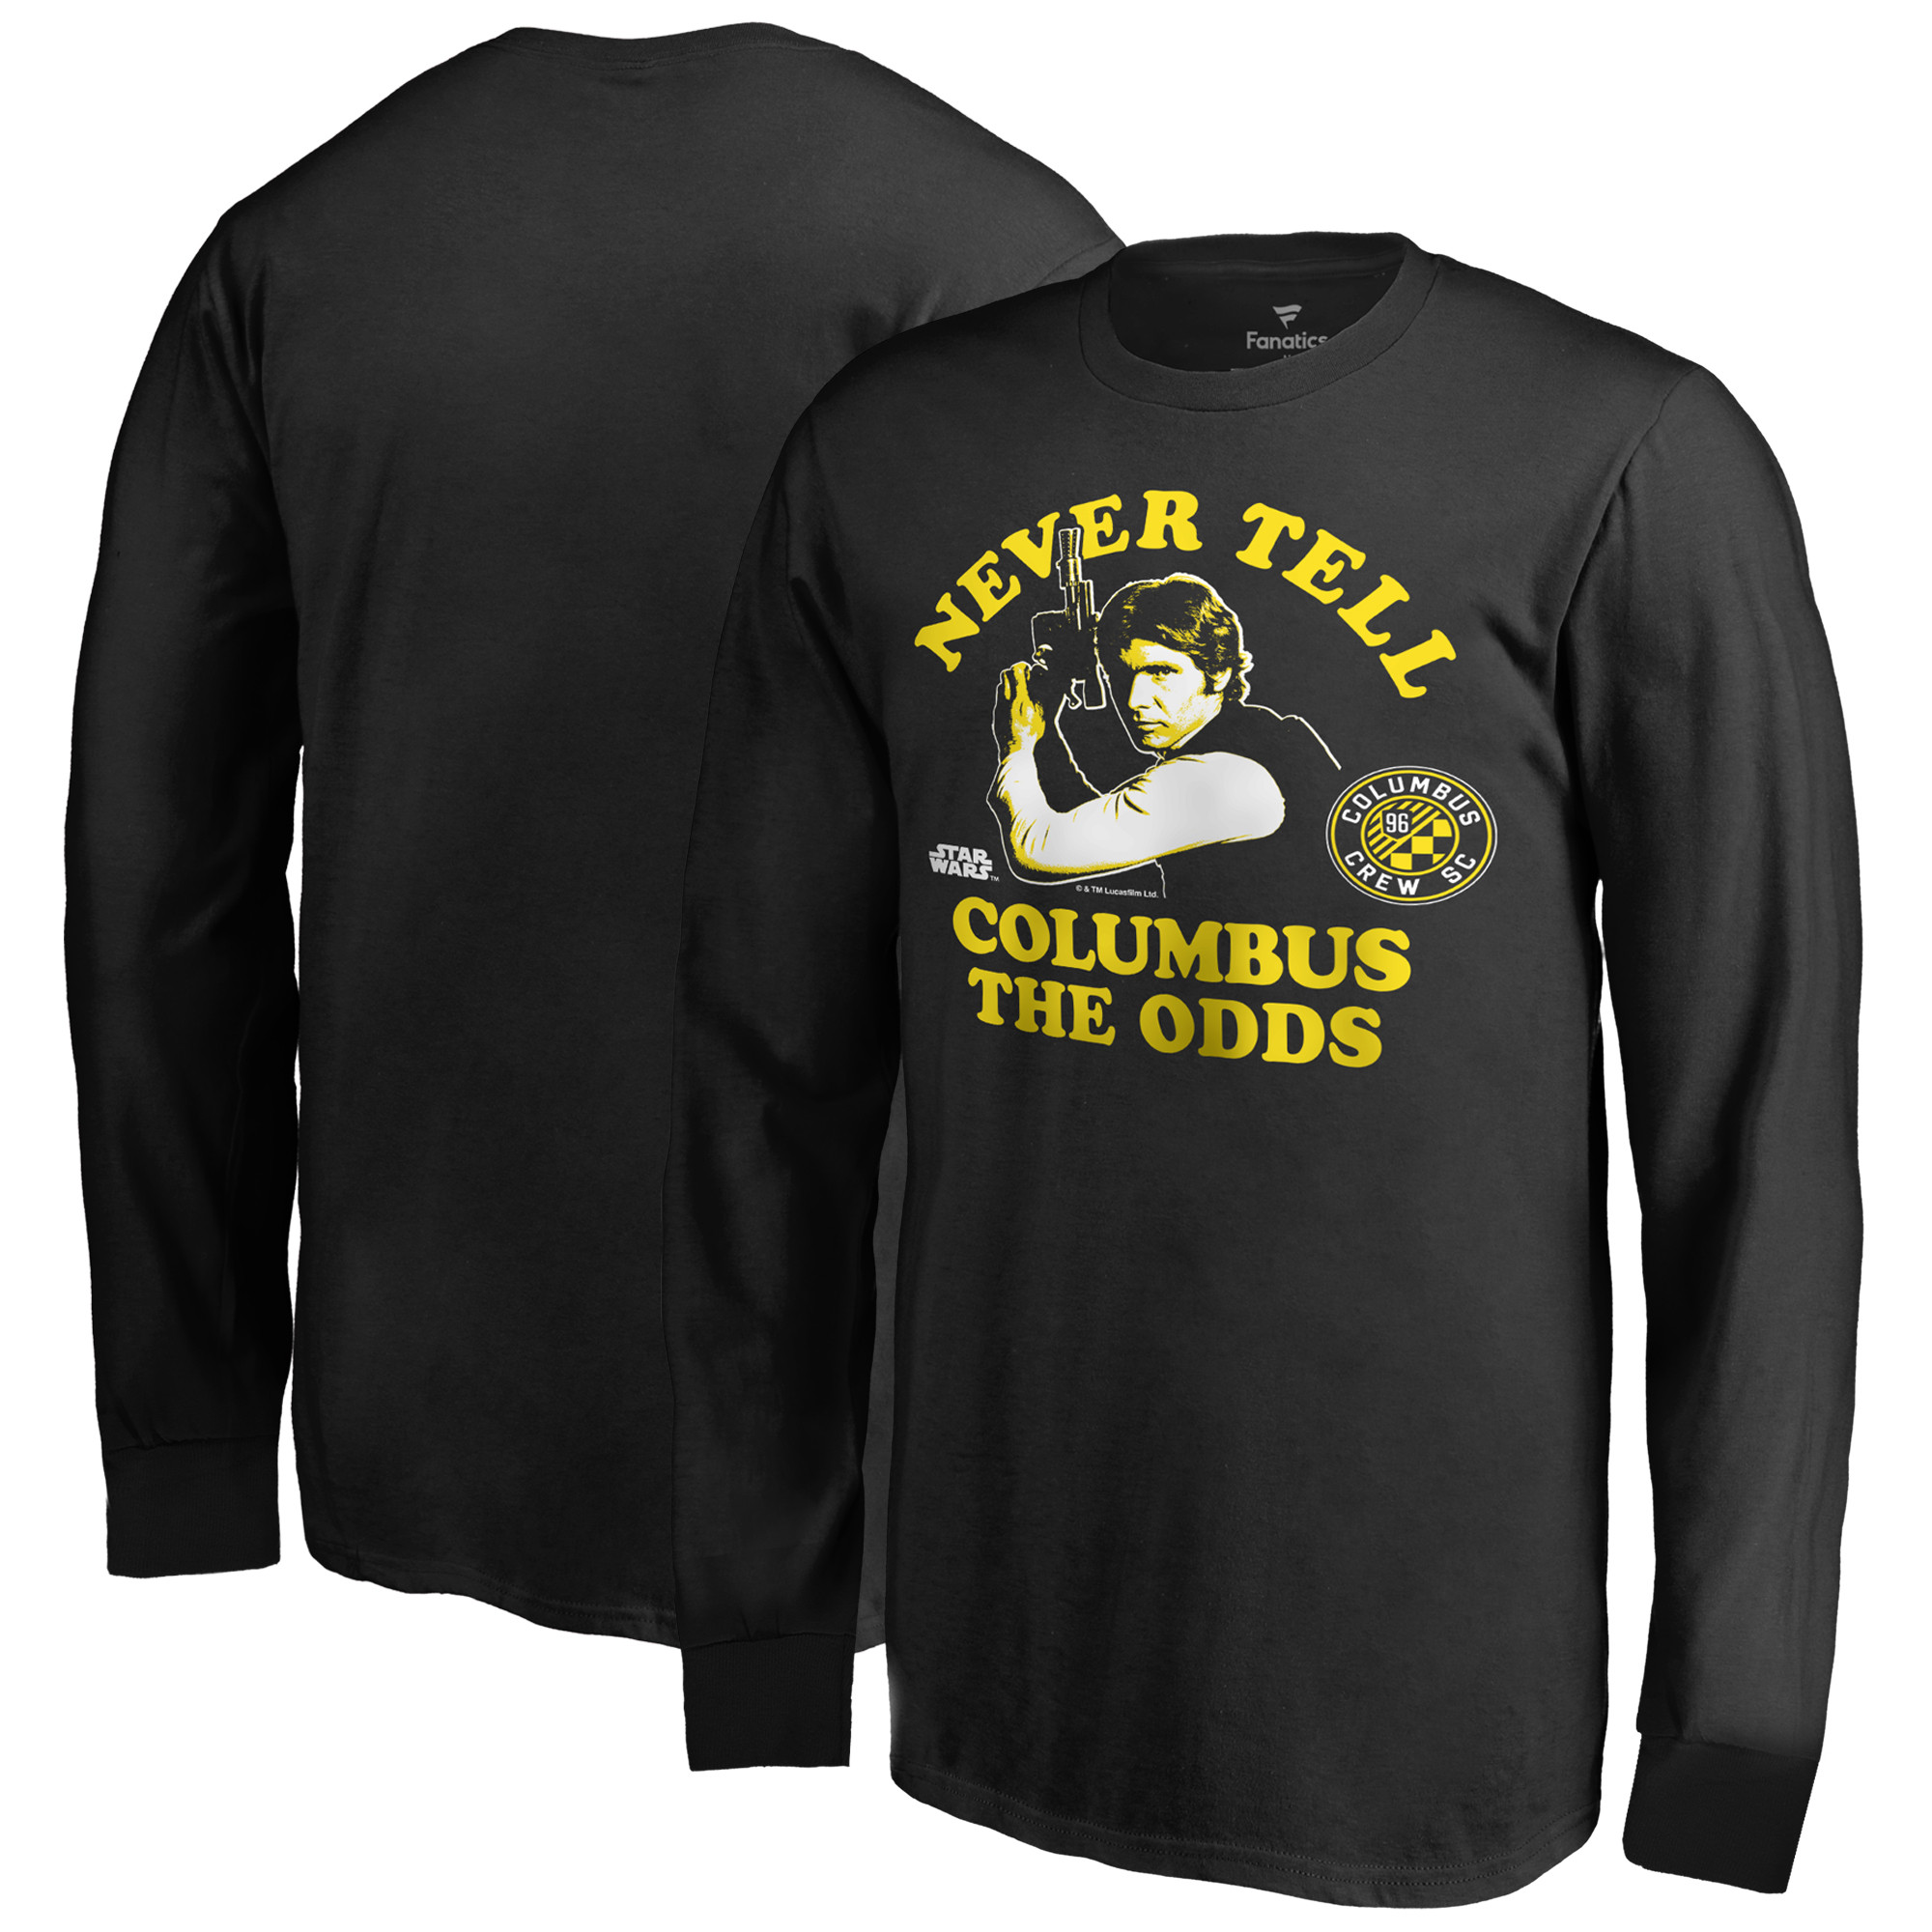 Columbus Crew SC Fanatics Branded Youth Star Wars Never Tell the Odds Long Sleeve T-Shirt - Black